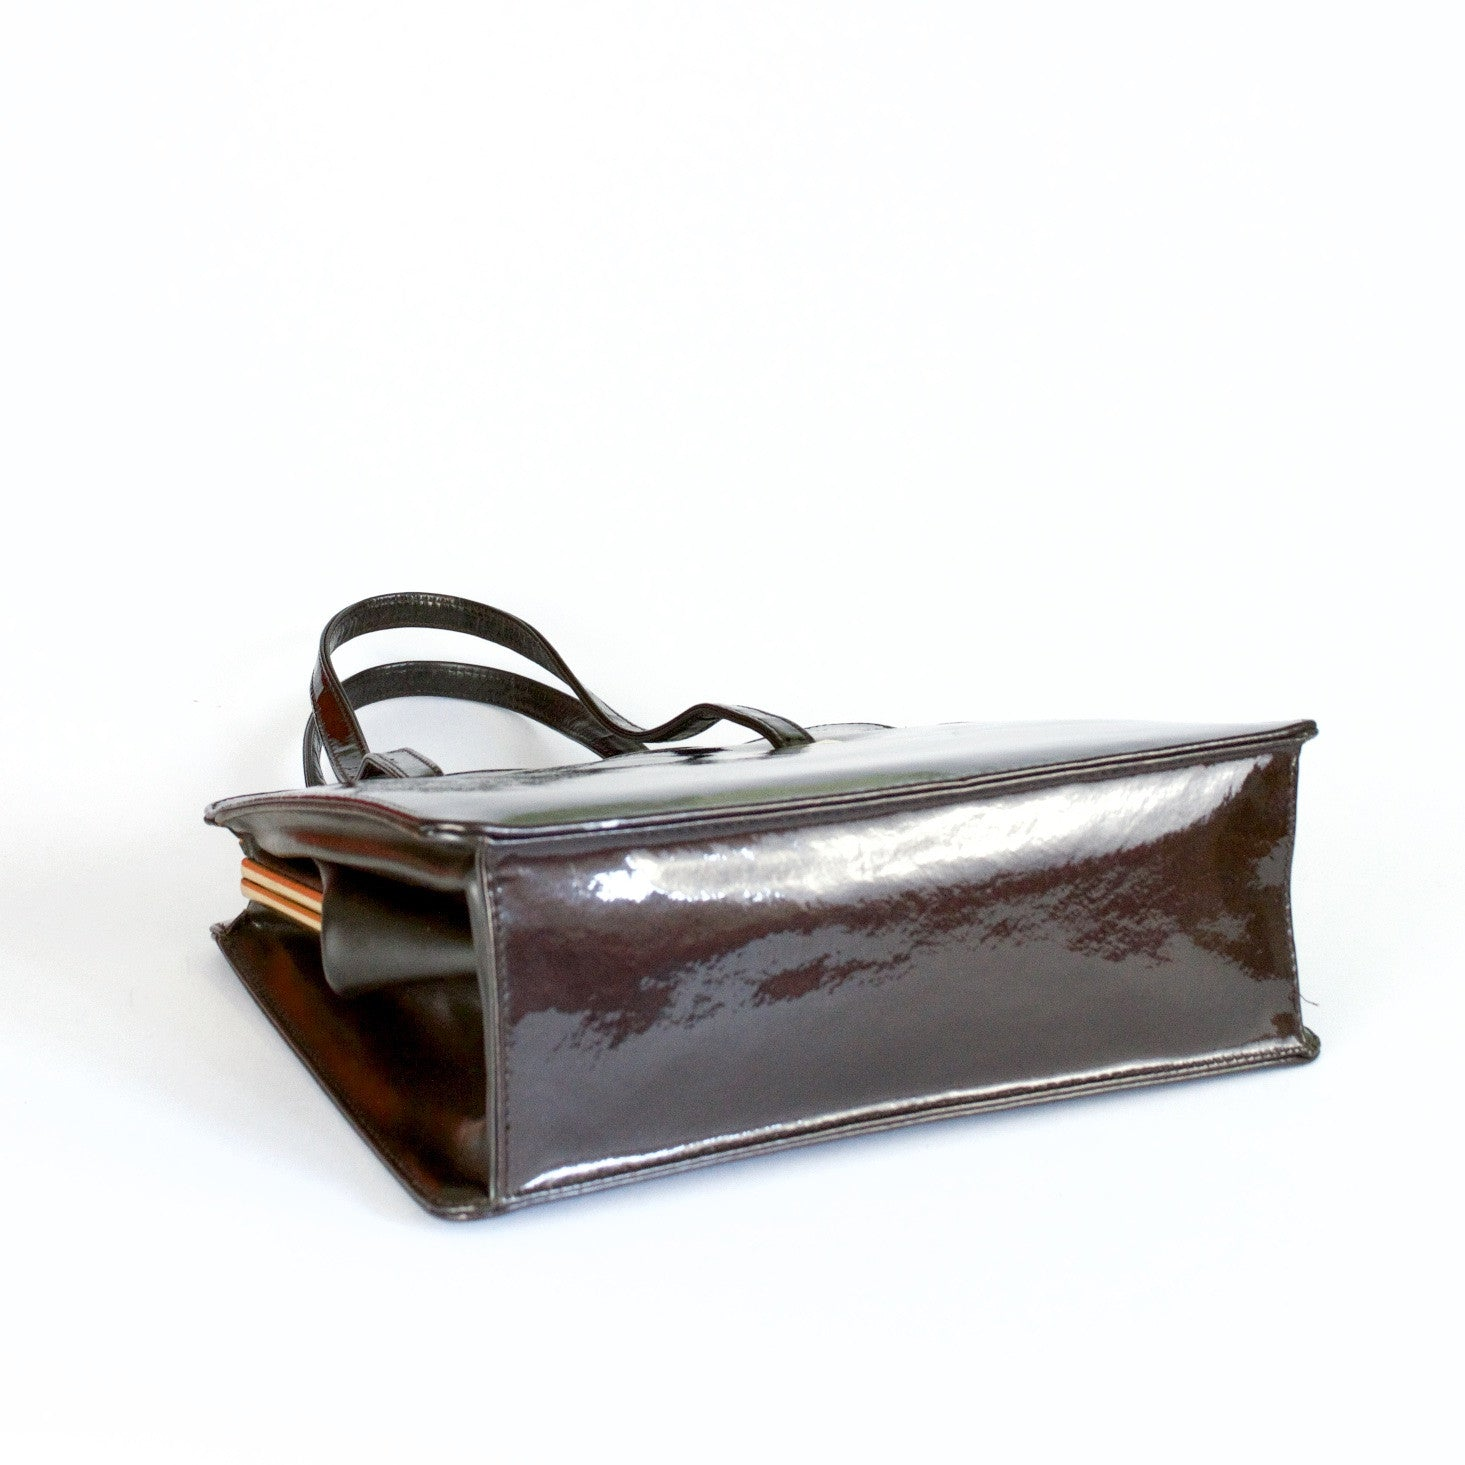 Brown patent leather vintage handbag by Widegate